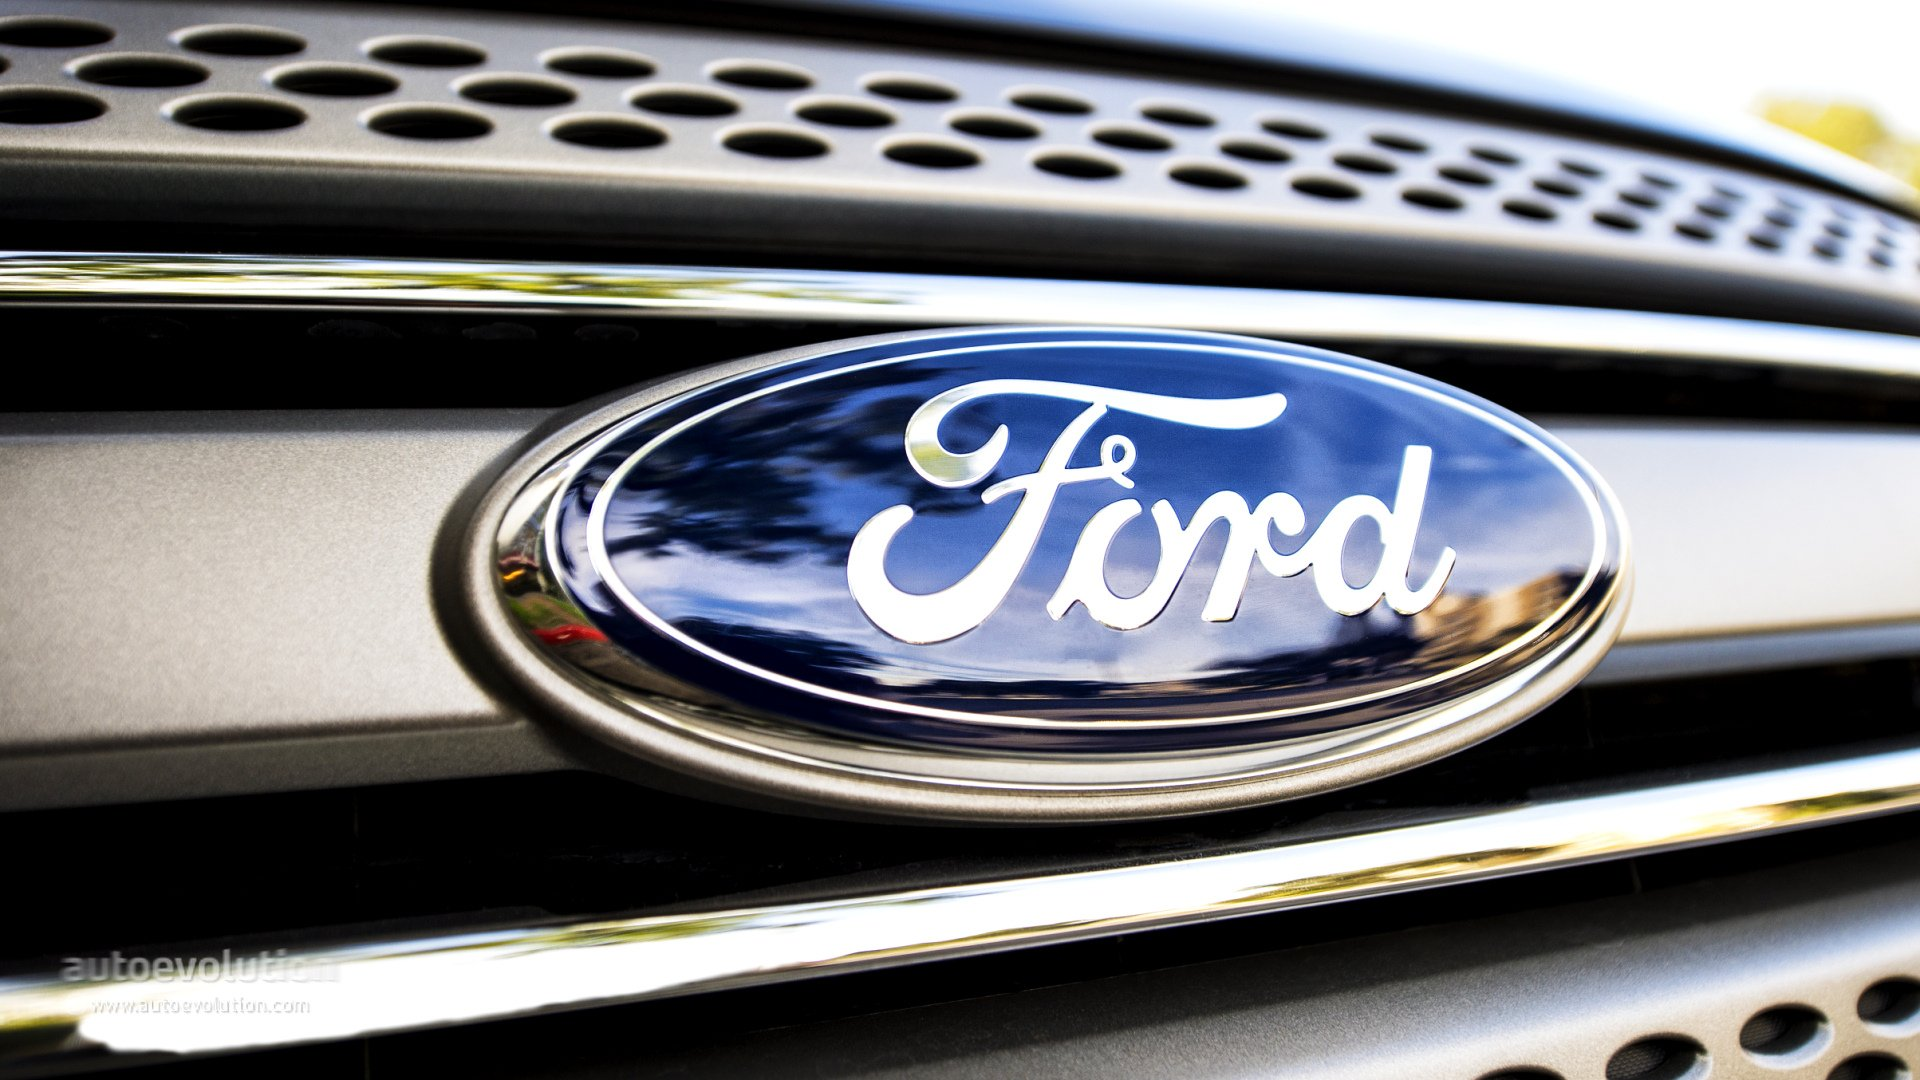 Ford Eyes Using Personal Data to Boost Profits